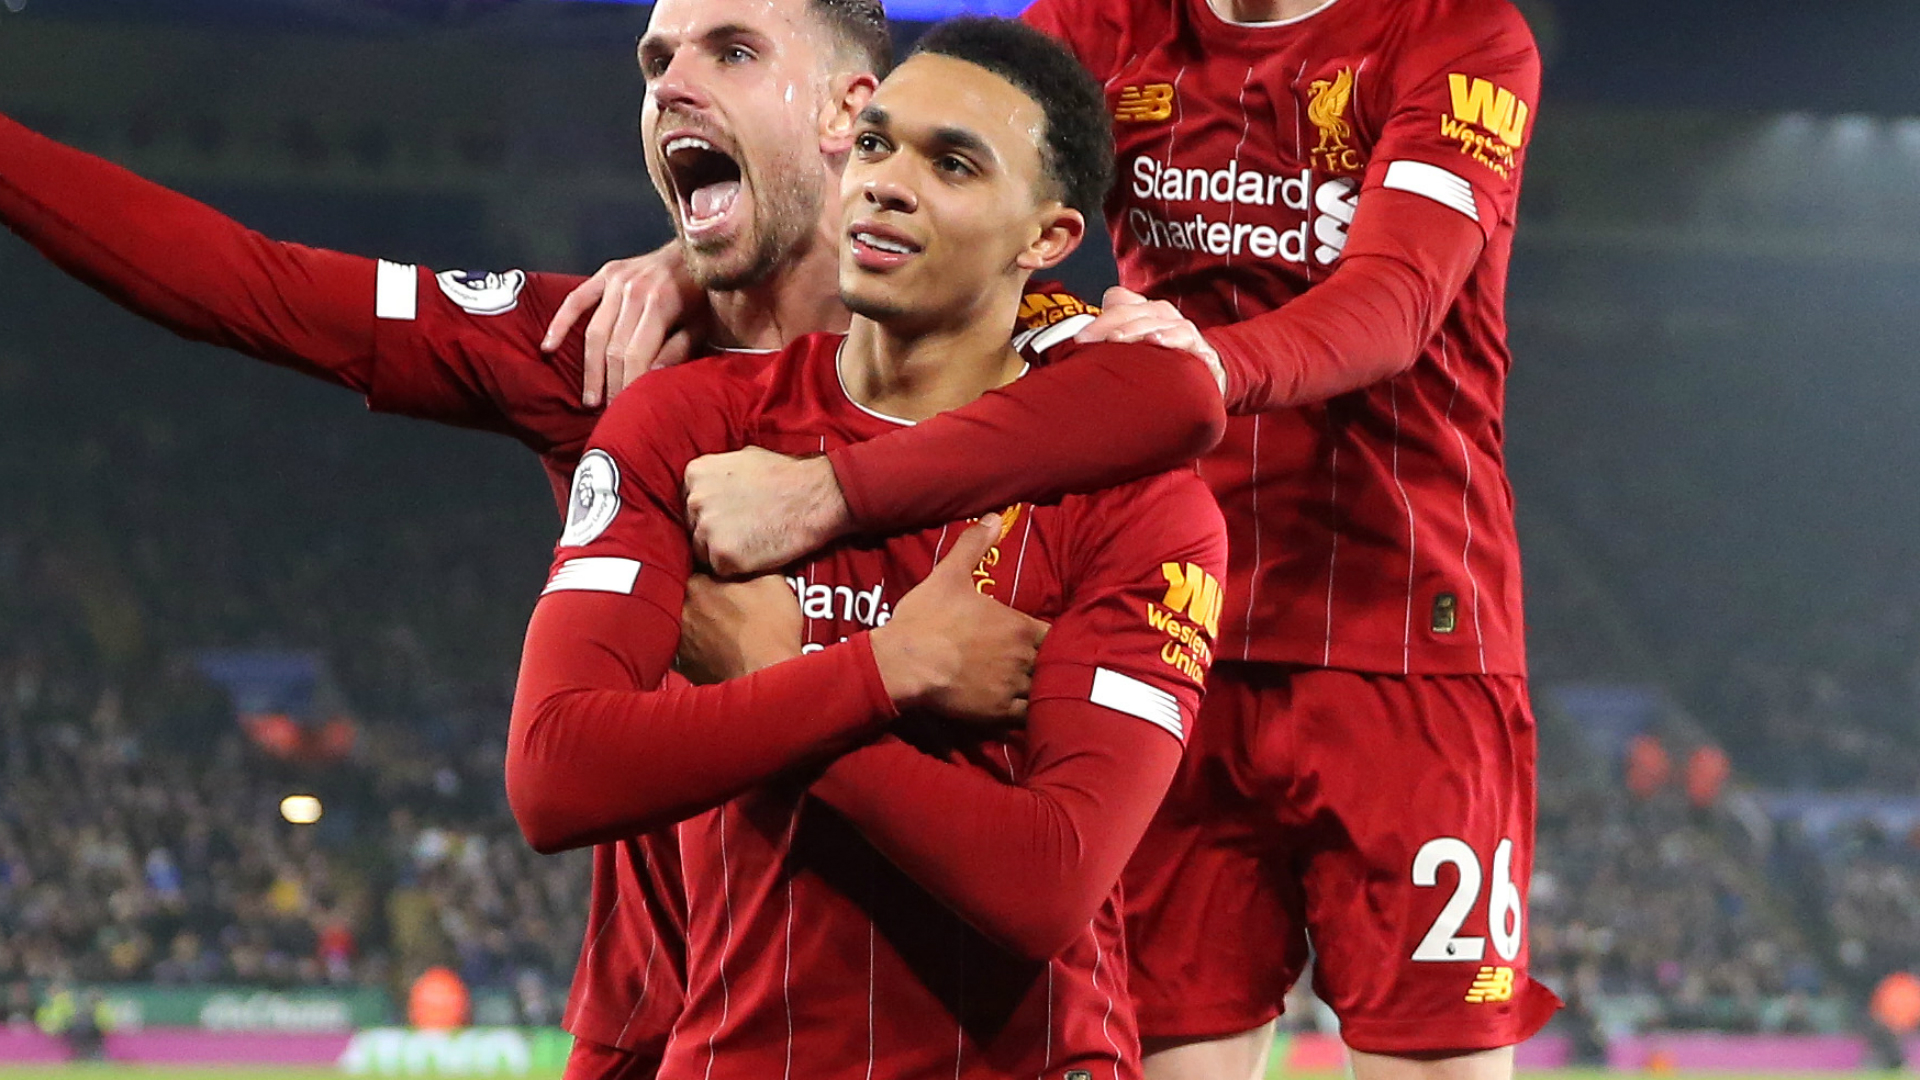 Alexander-Arnold imitates Mbappe's goal celebration as Liverpool rout Leicester